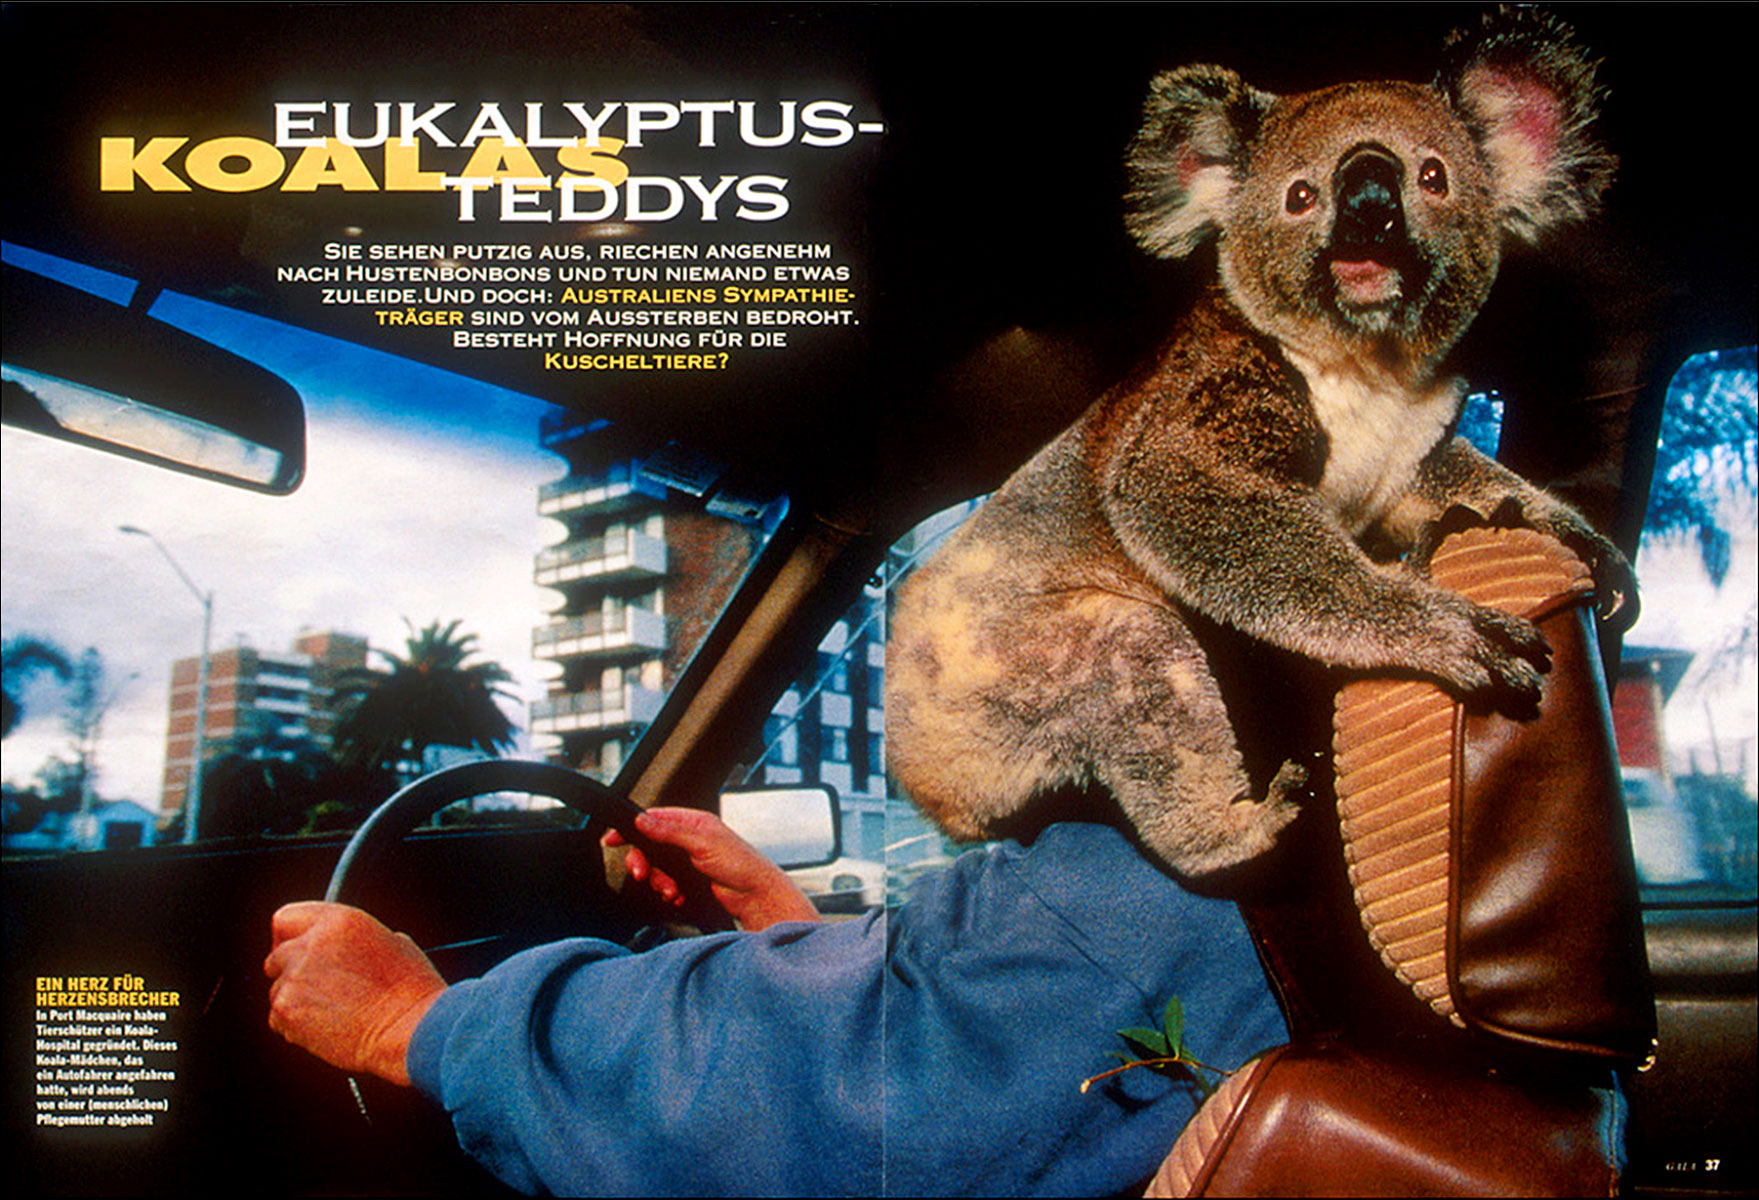 Photo of a koala being taken home for the evening by an animal caregiver in Port Macquarie, New South Wales, Australia.  Story on Koalas originally photographed for National Geographic Magazine, and subsequently published in the German magazine GEO (seen here).